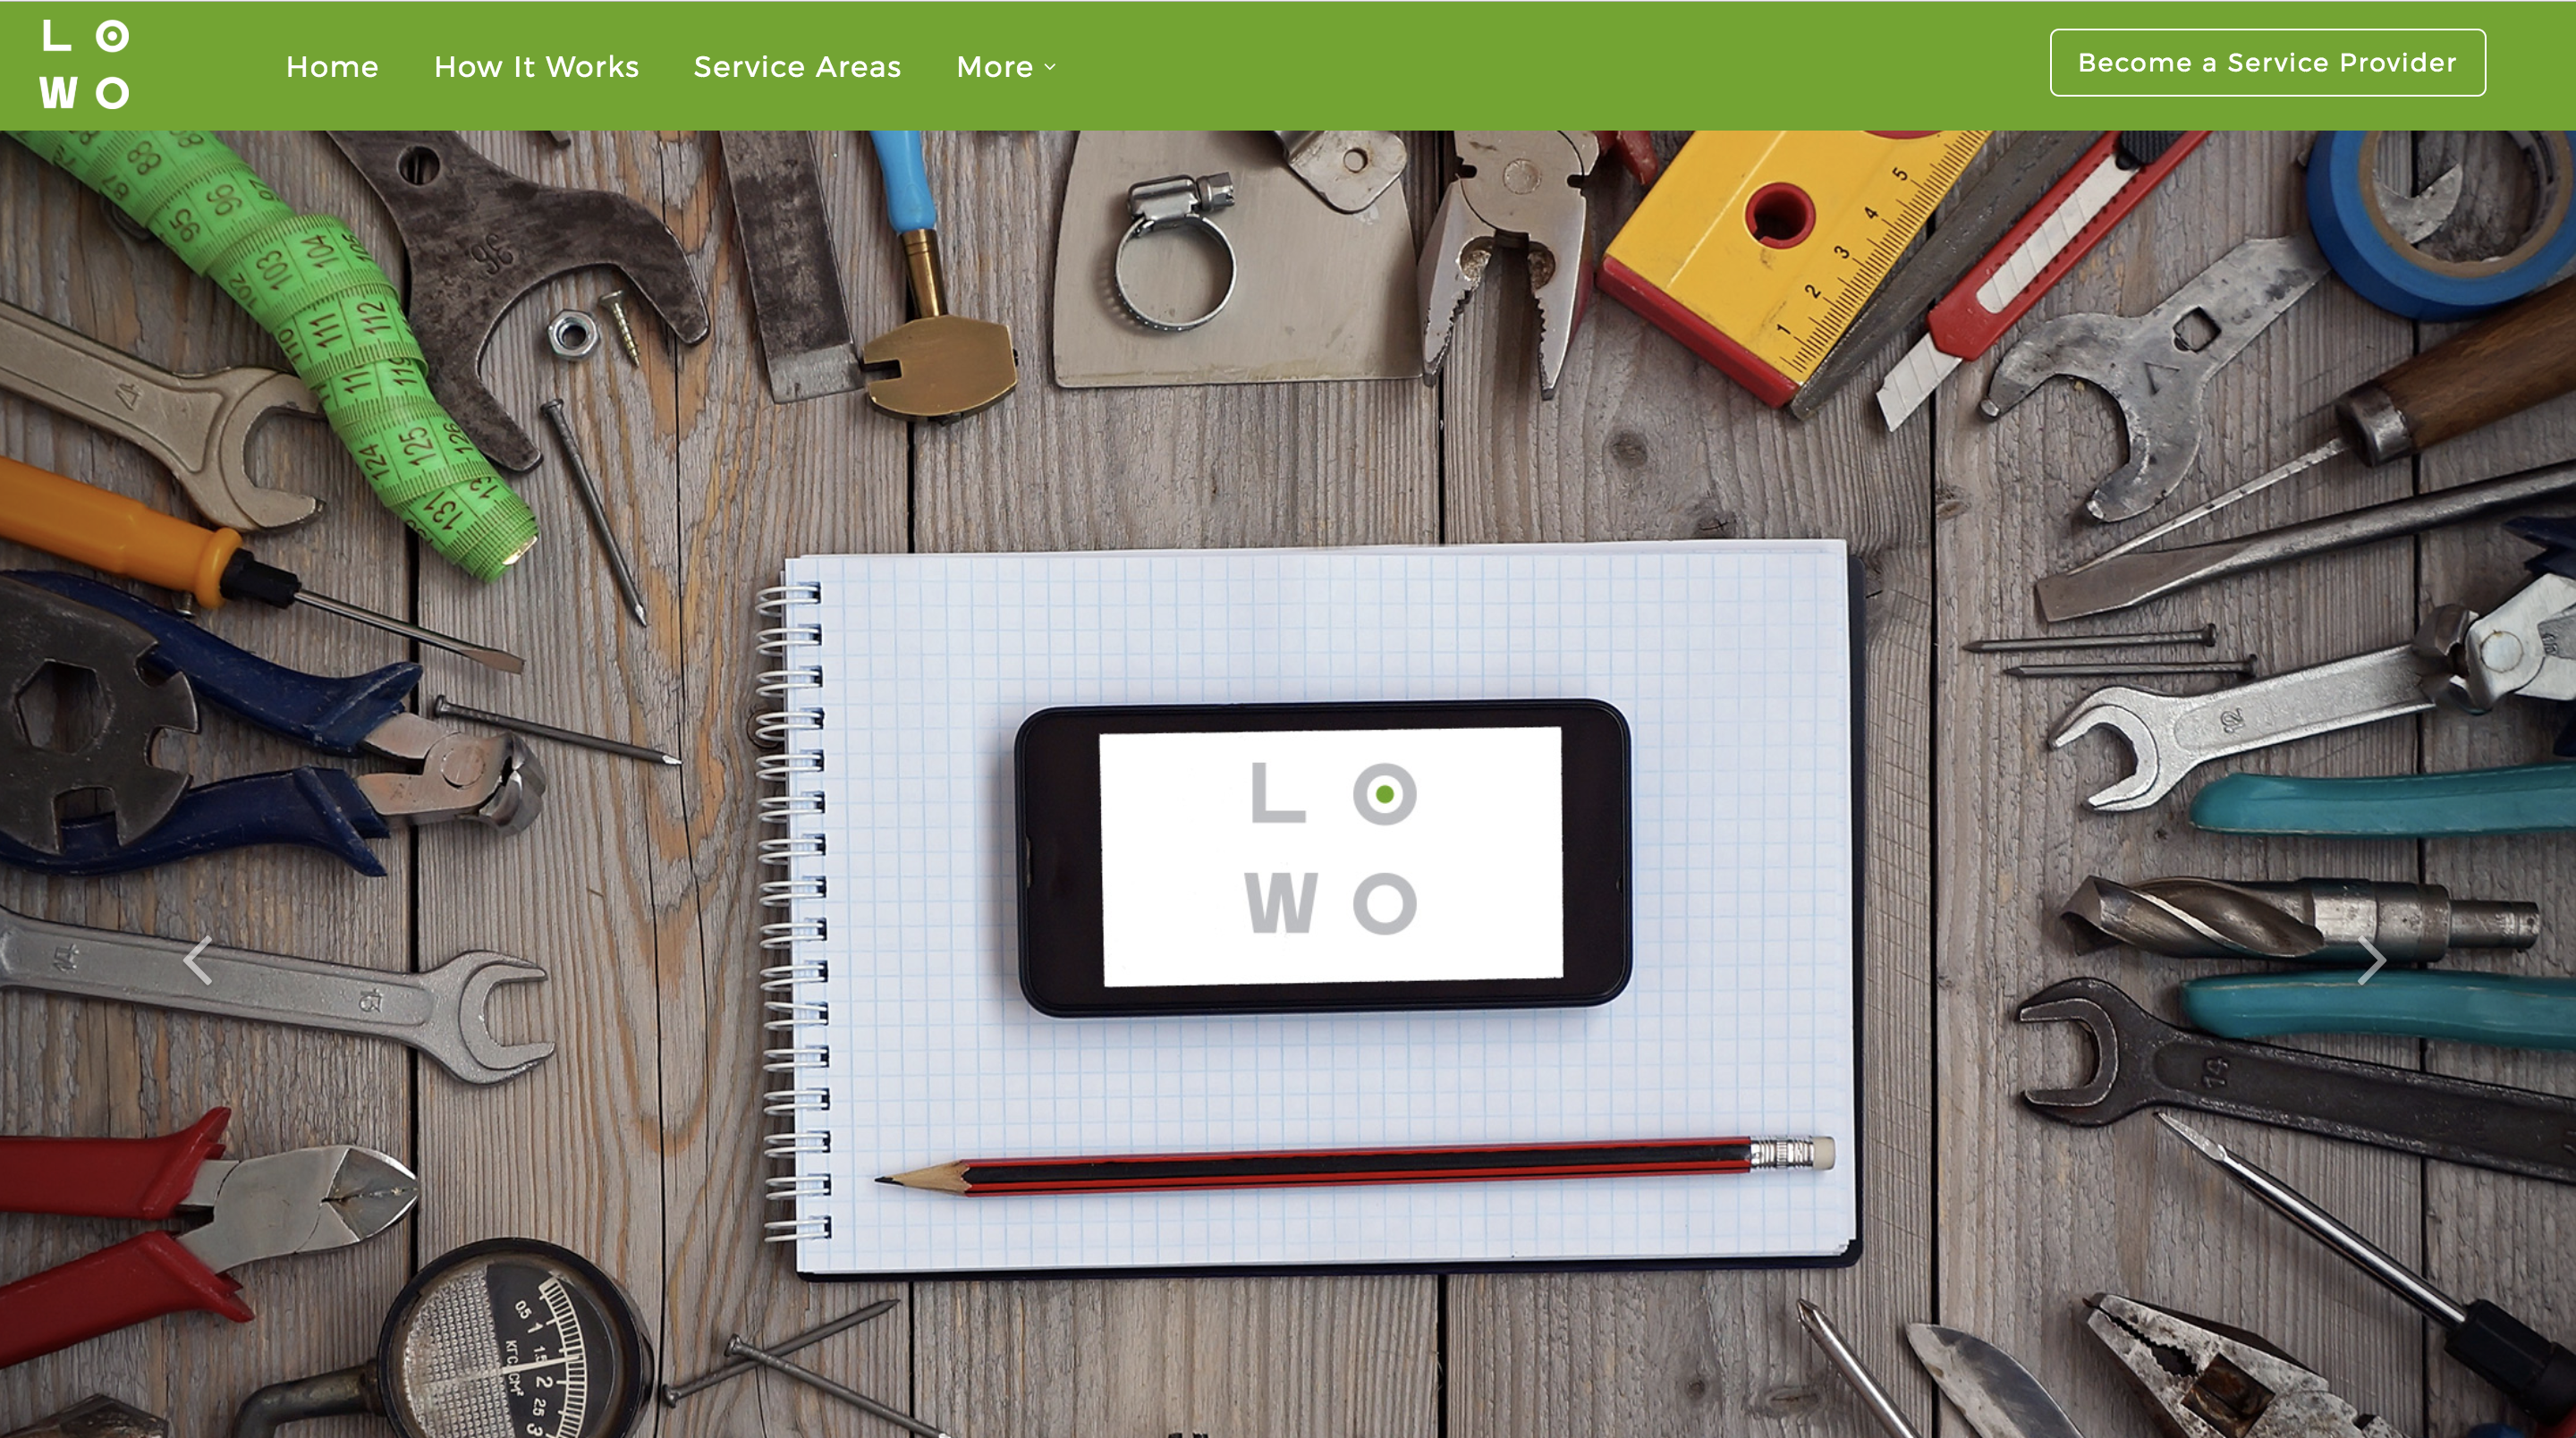 LOWO - Service when you need it.